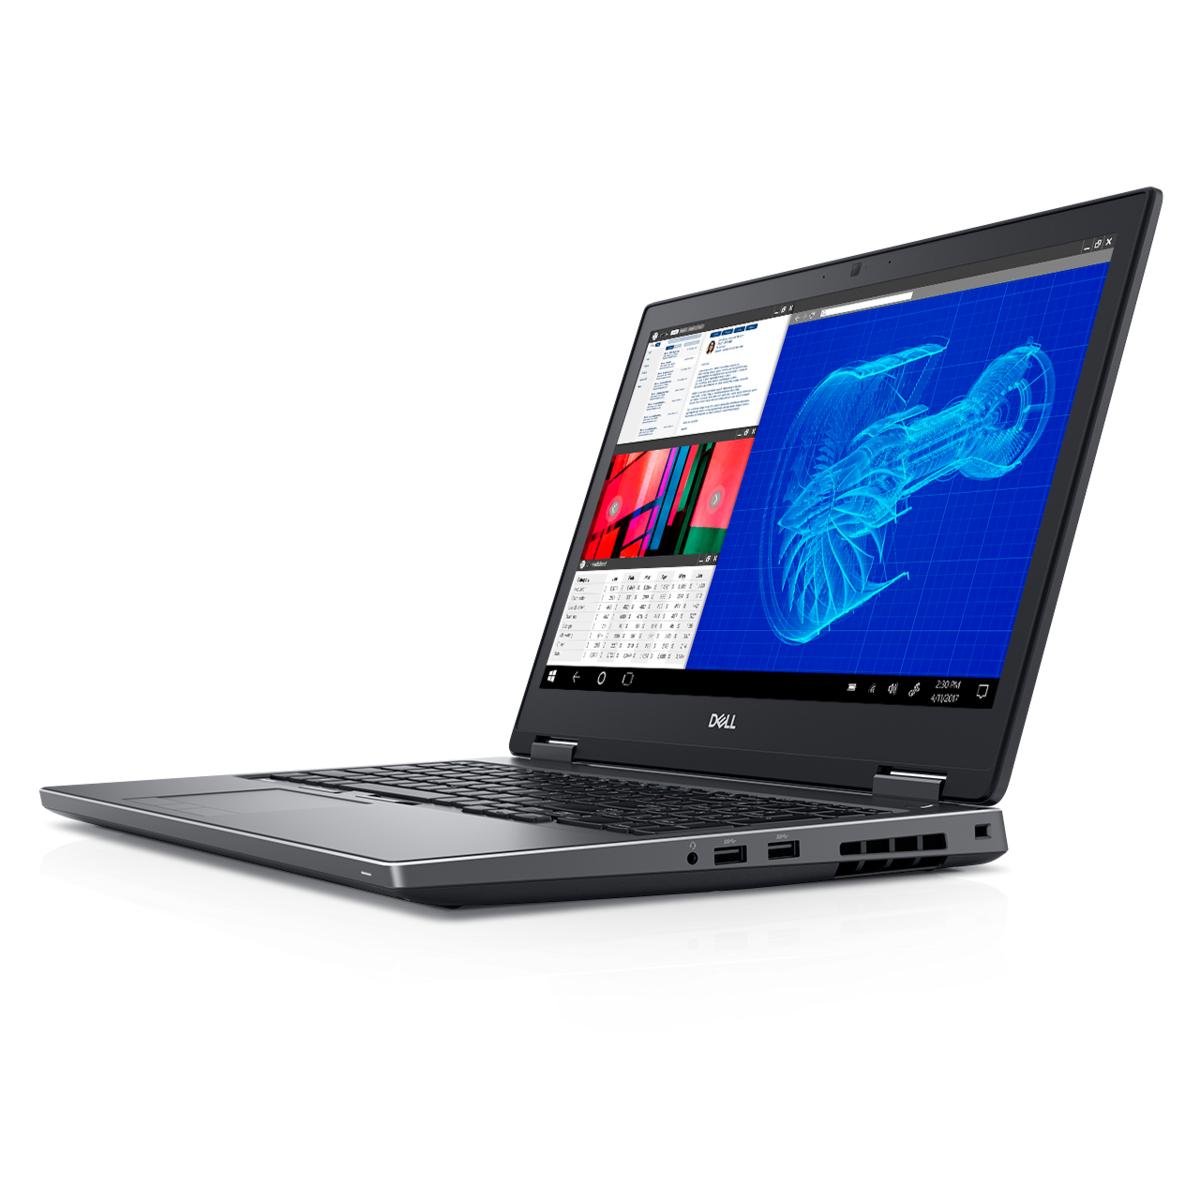 Photo of The beast is here: Introducing Dell Precision 7730, world's most powerful laptop